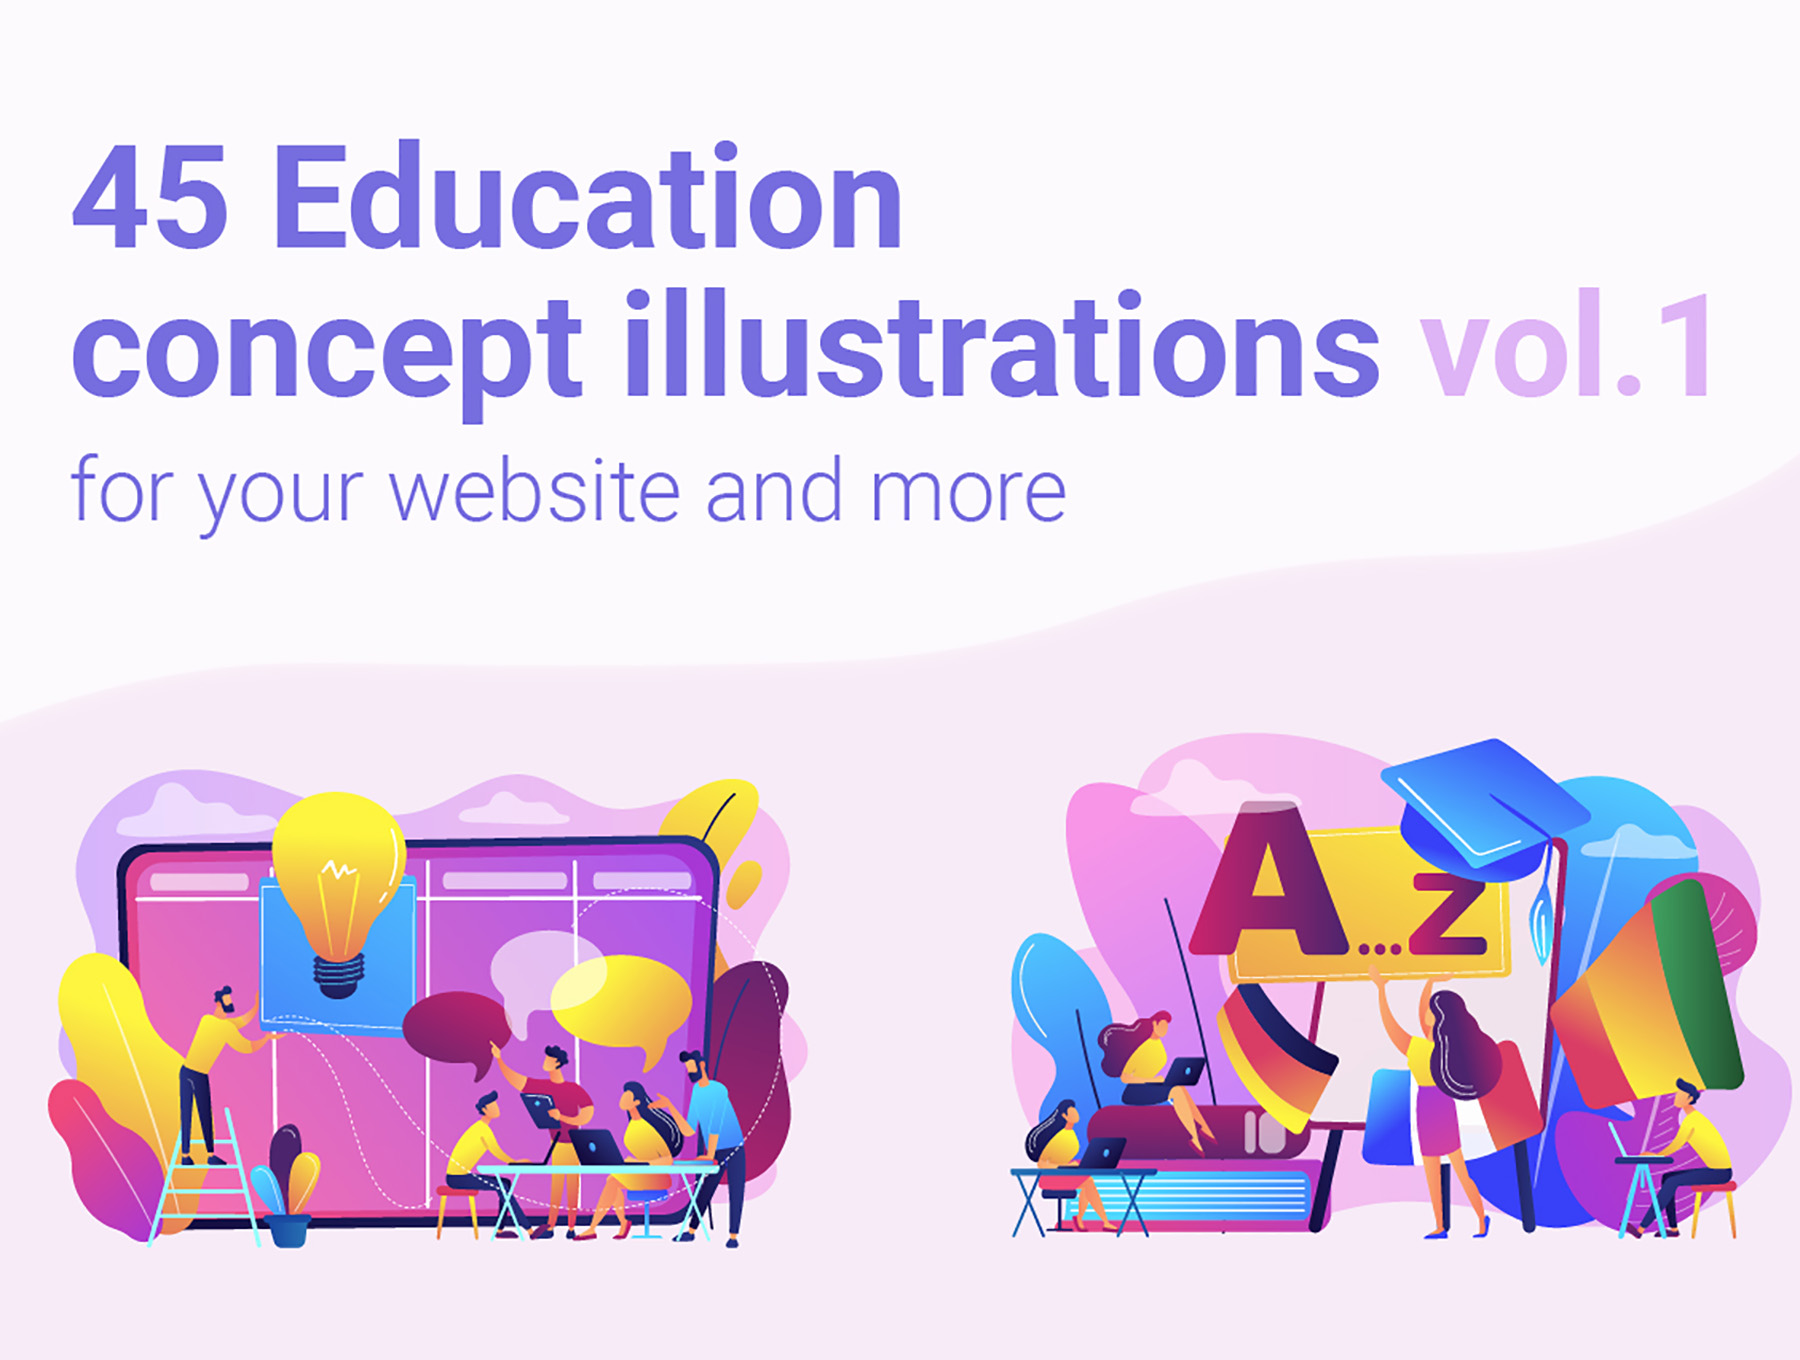 organic_education_concept-illustrations-vol1-cover.jpg